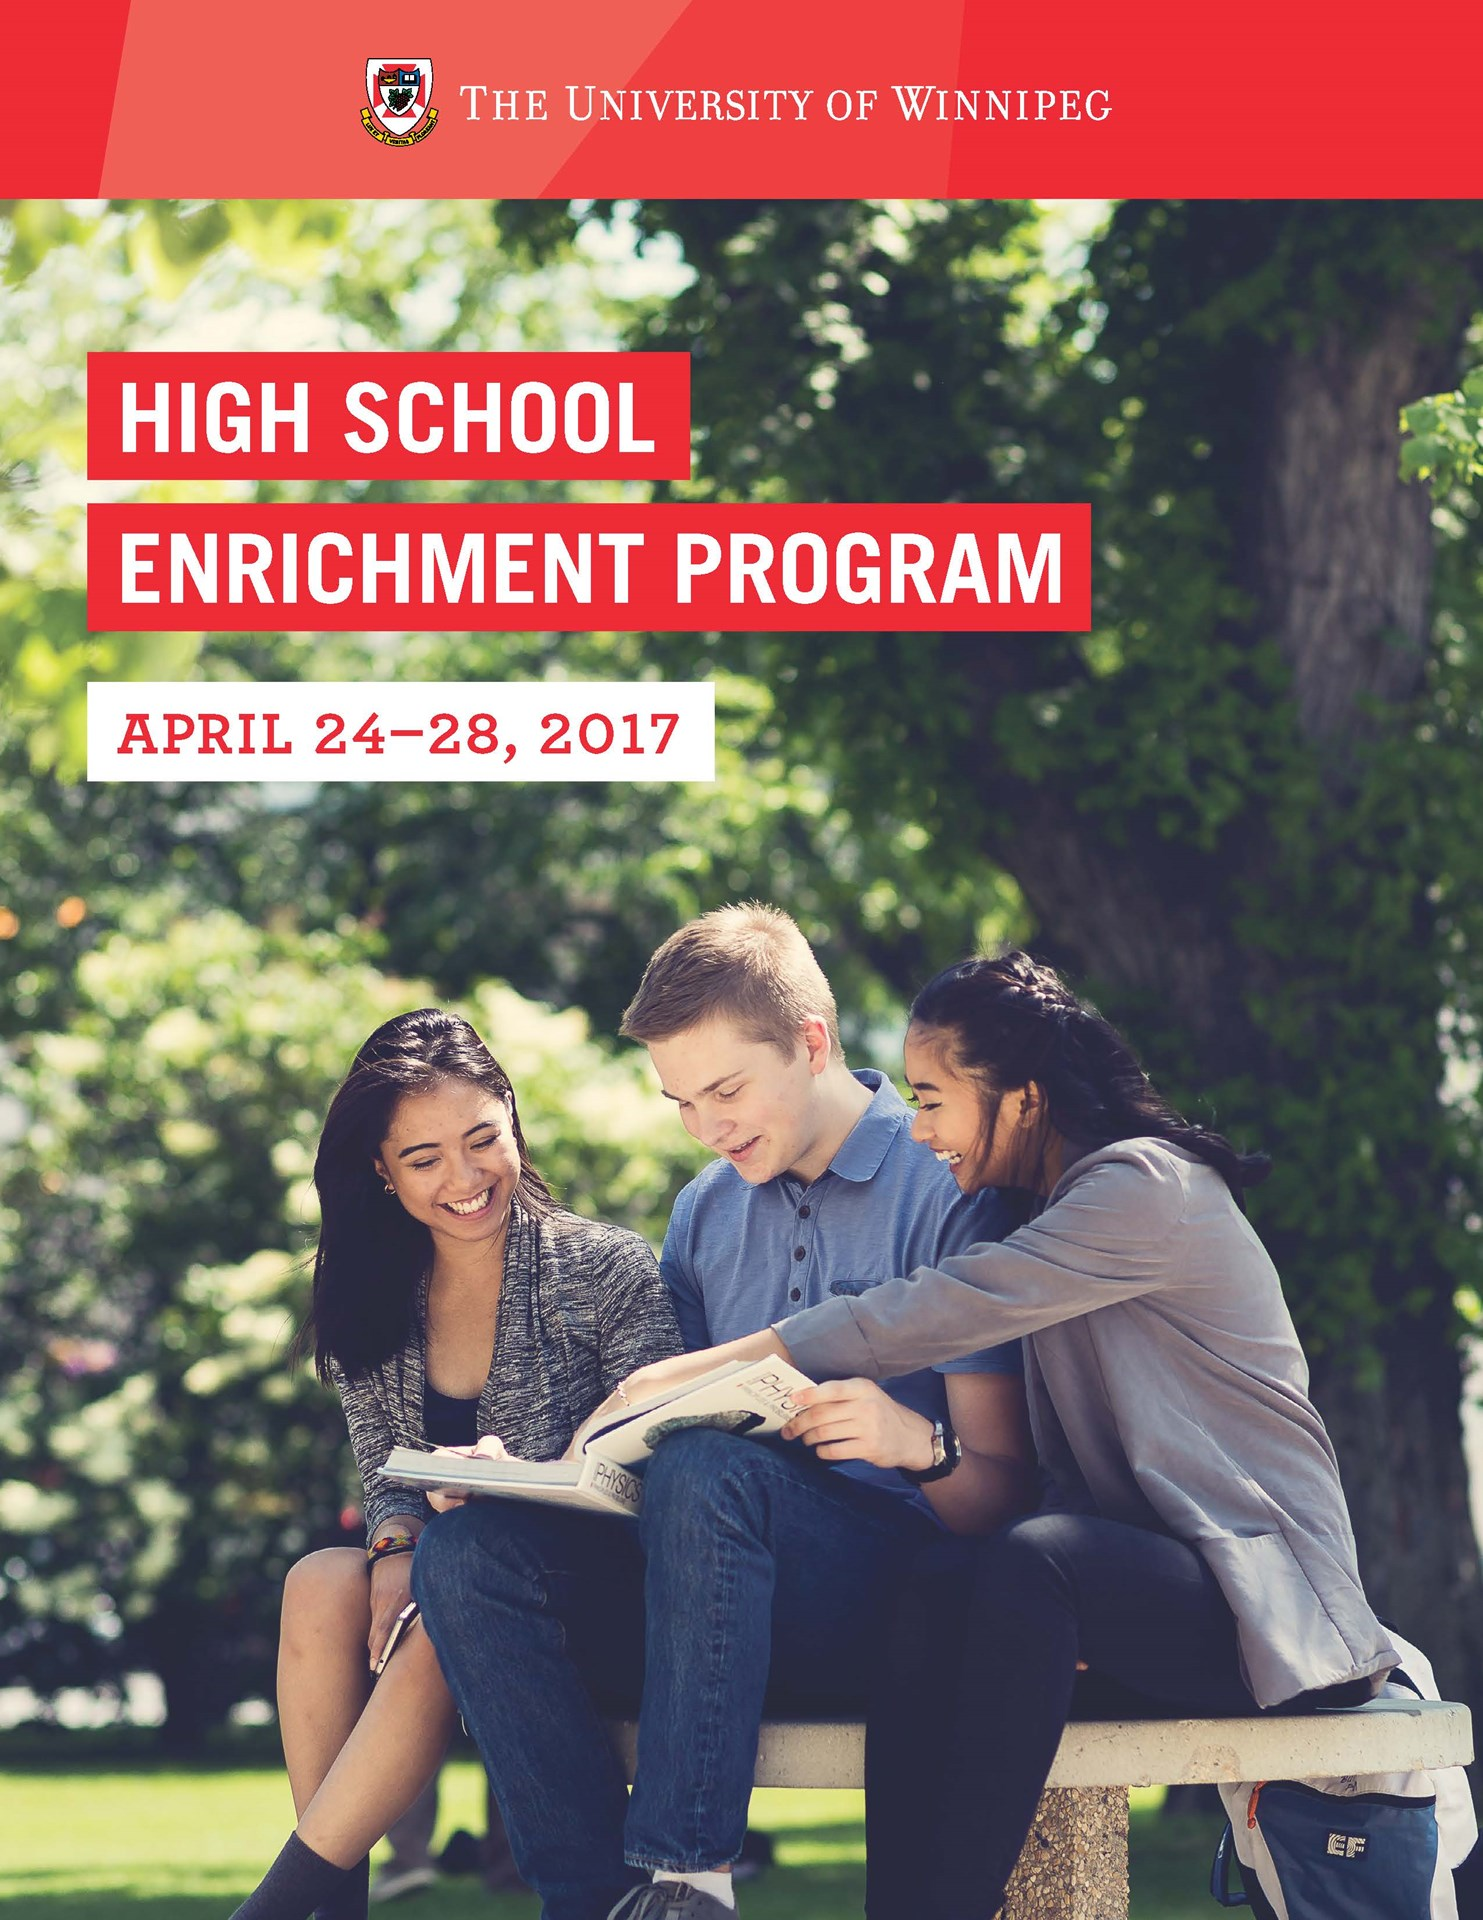 University of Winnipeg High School Enrichment Program